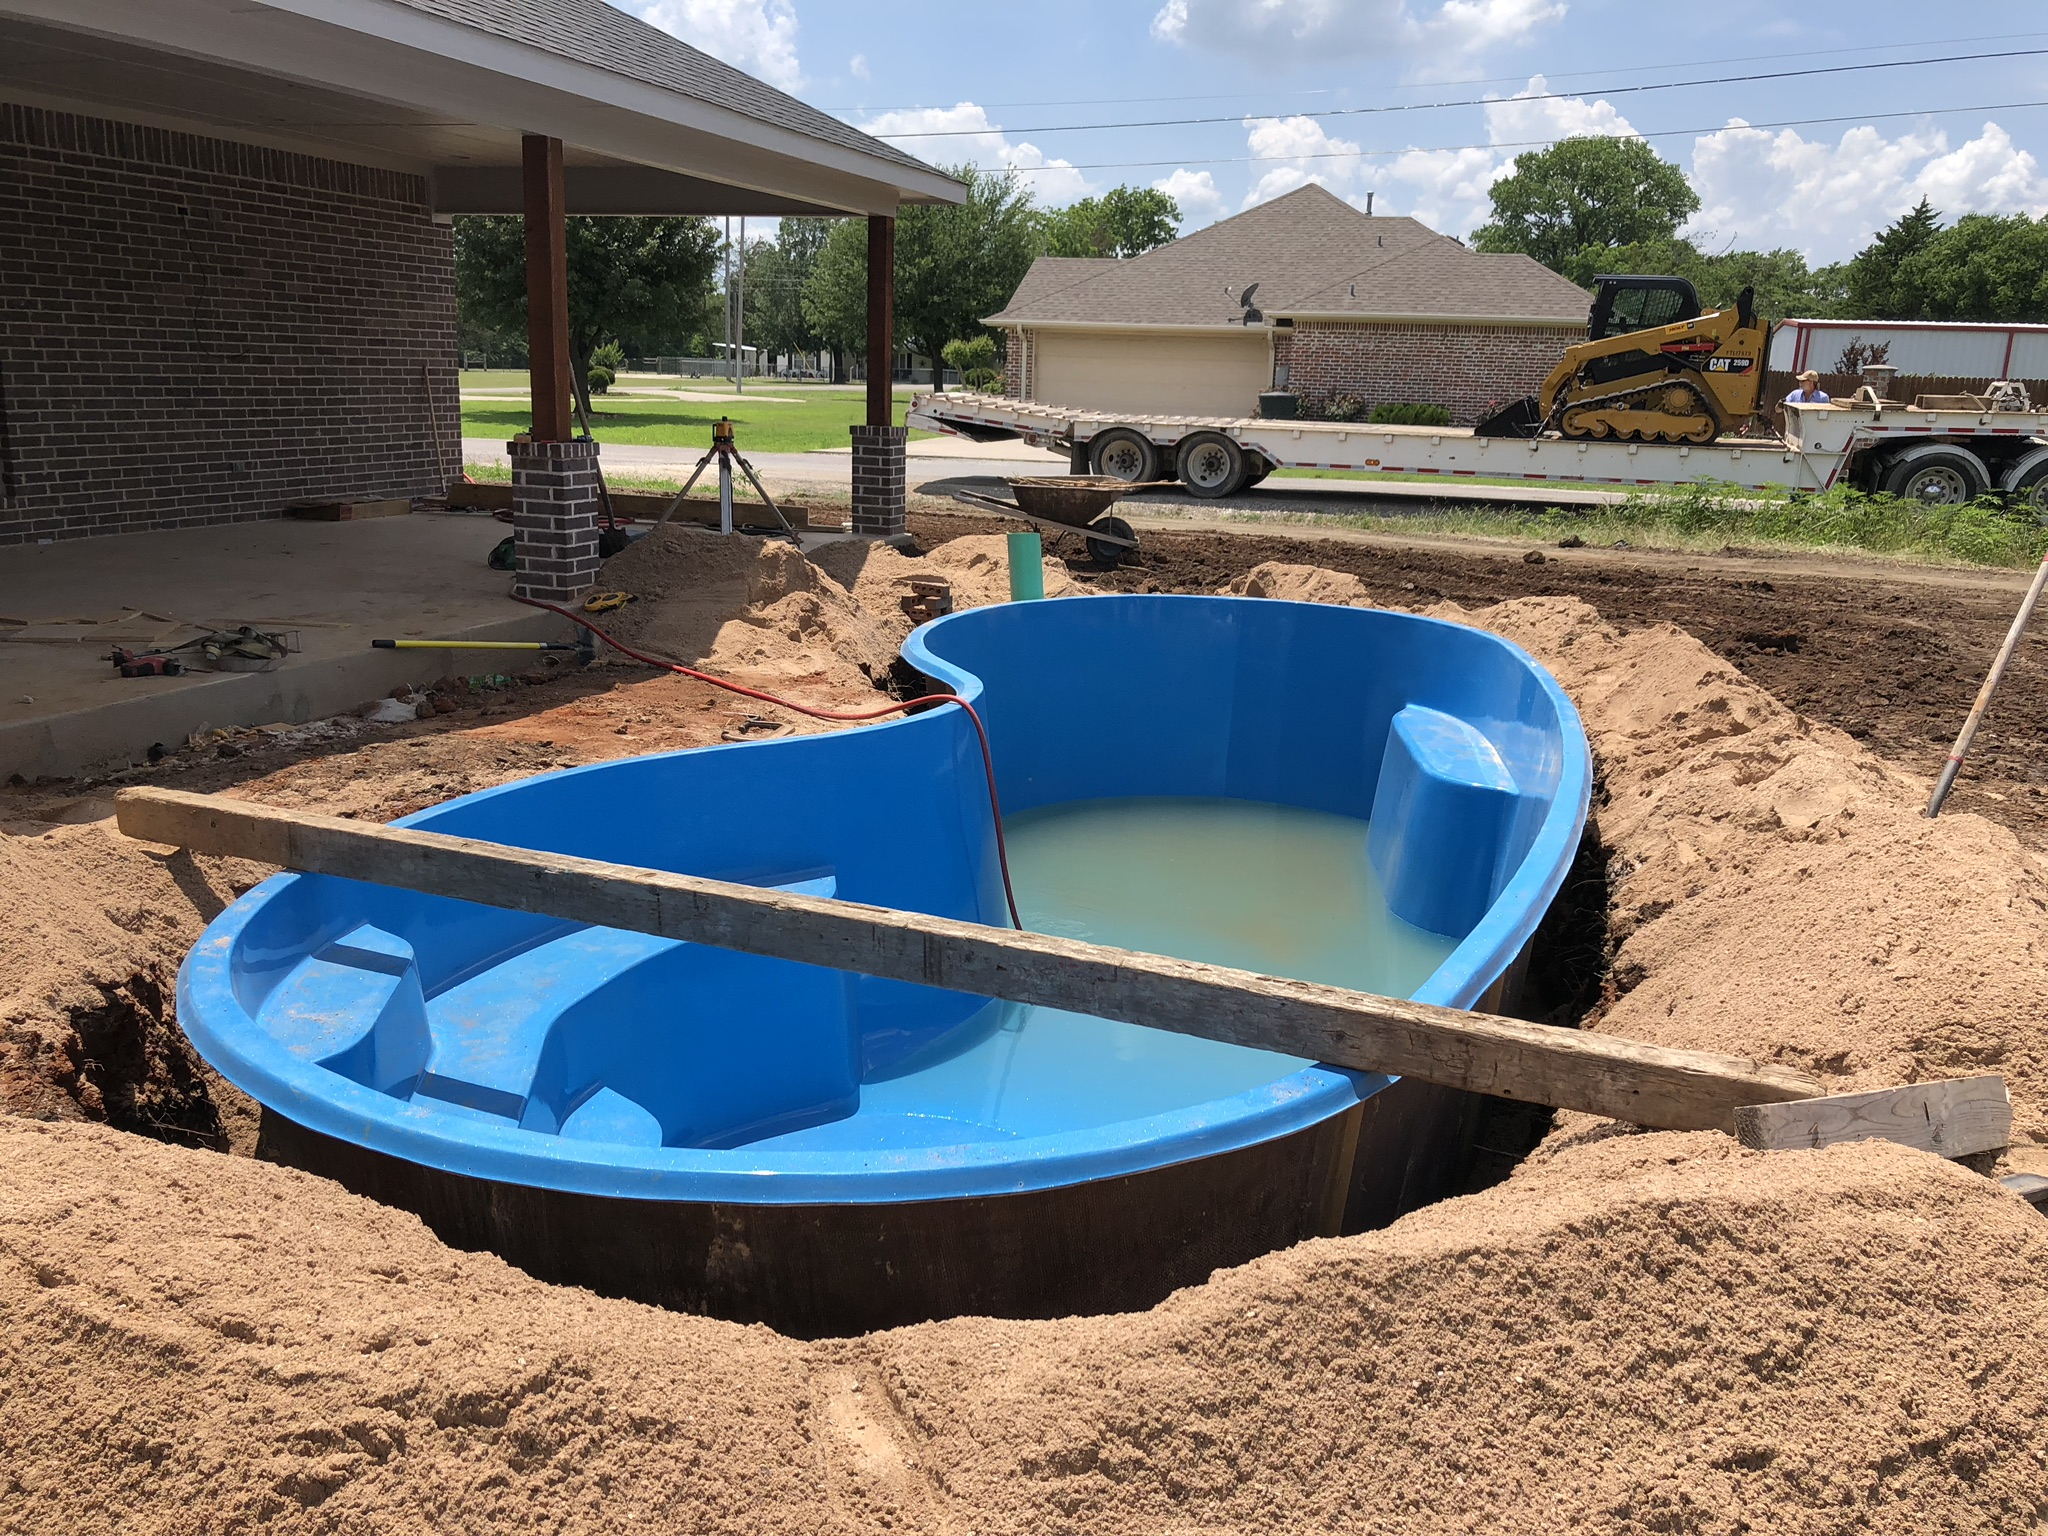 It ain't pretty right now but it will be once we're done! This image shows a beautiful Seaside Fiberglass Pool shell being installed in Tioga, TX. This home was recently built and the home owner hasn't even moved in yet. We are completing the installation of this beautiful pool and by the time the moving boxes arrive, they will be ready to take a cold plunge in their gorgeous fiberglass pool!